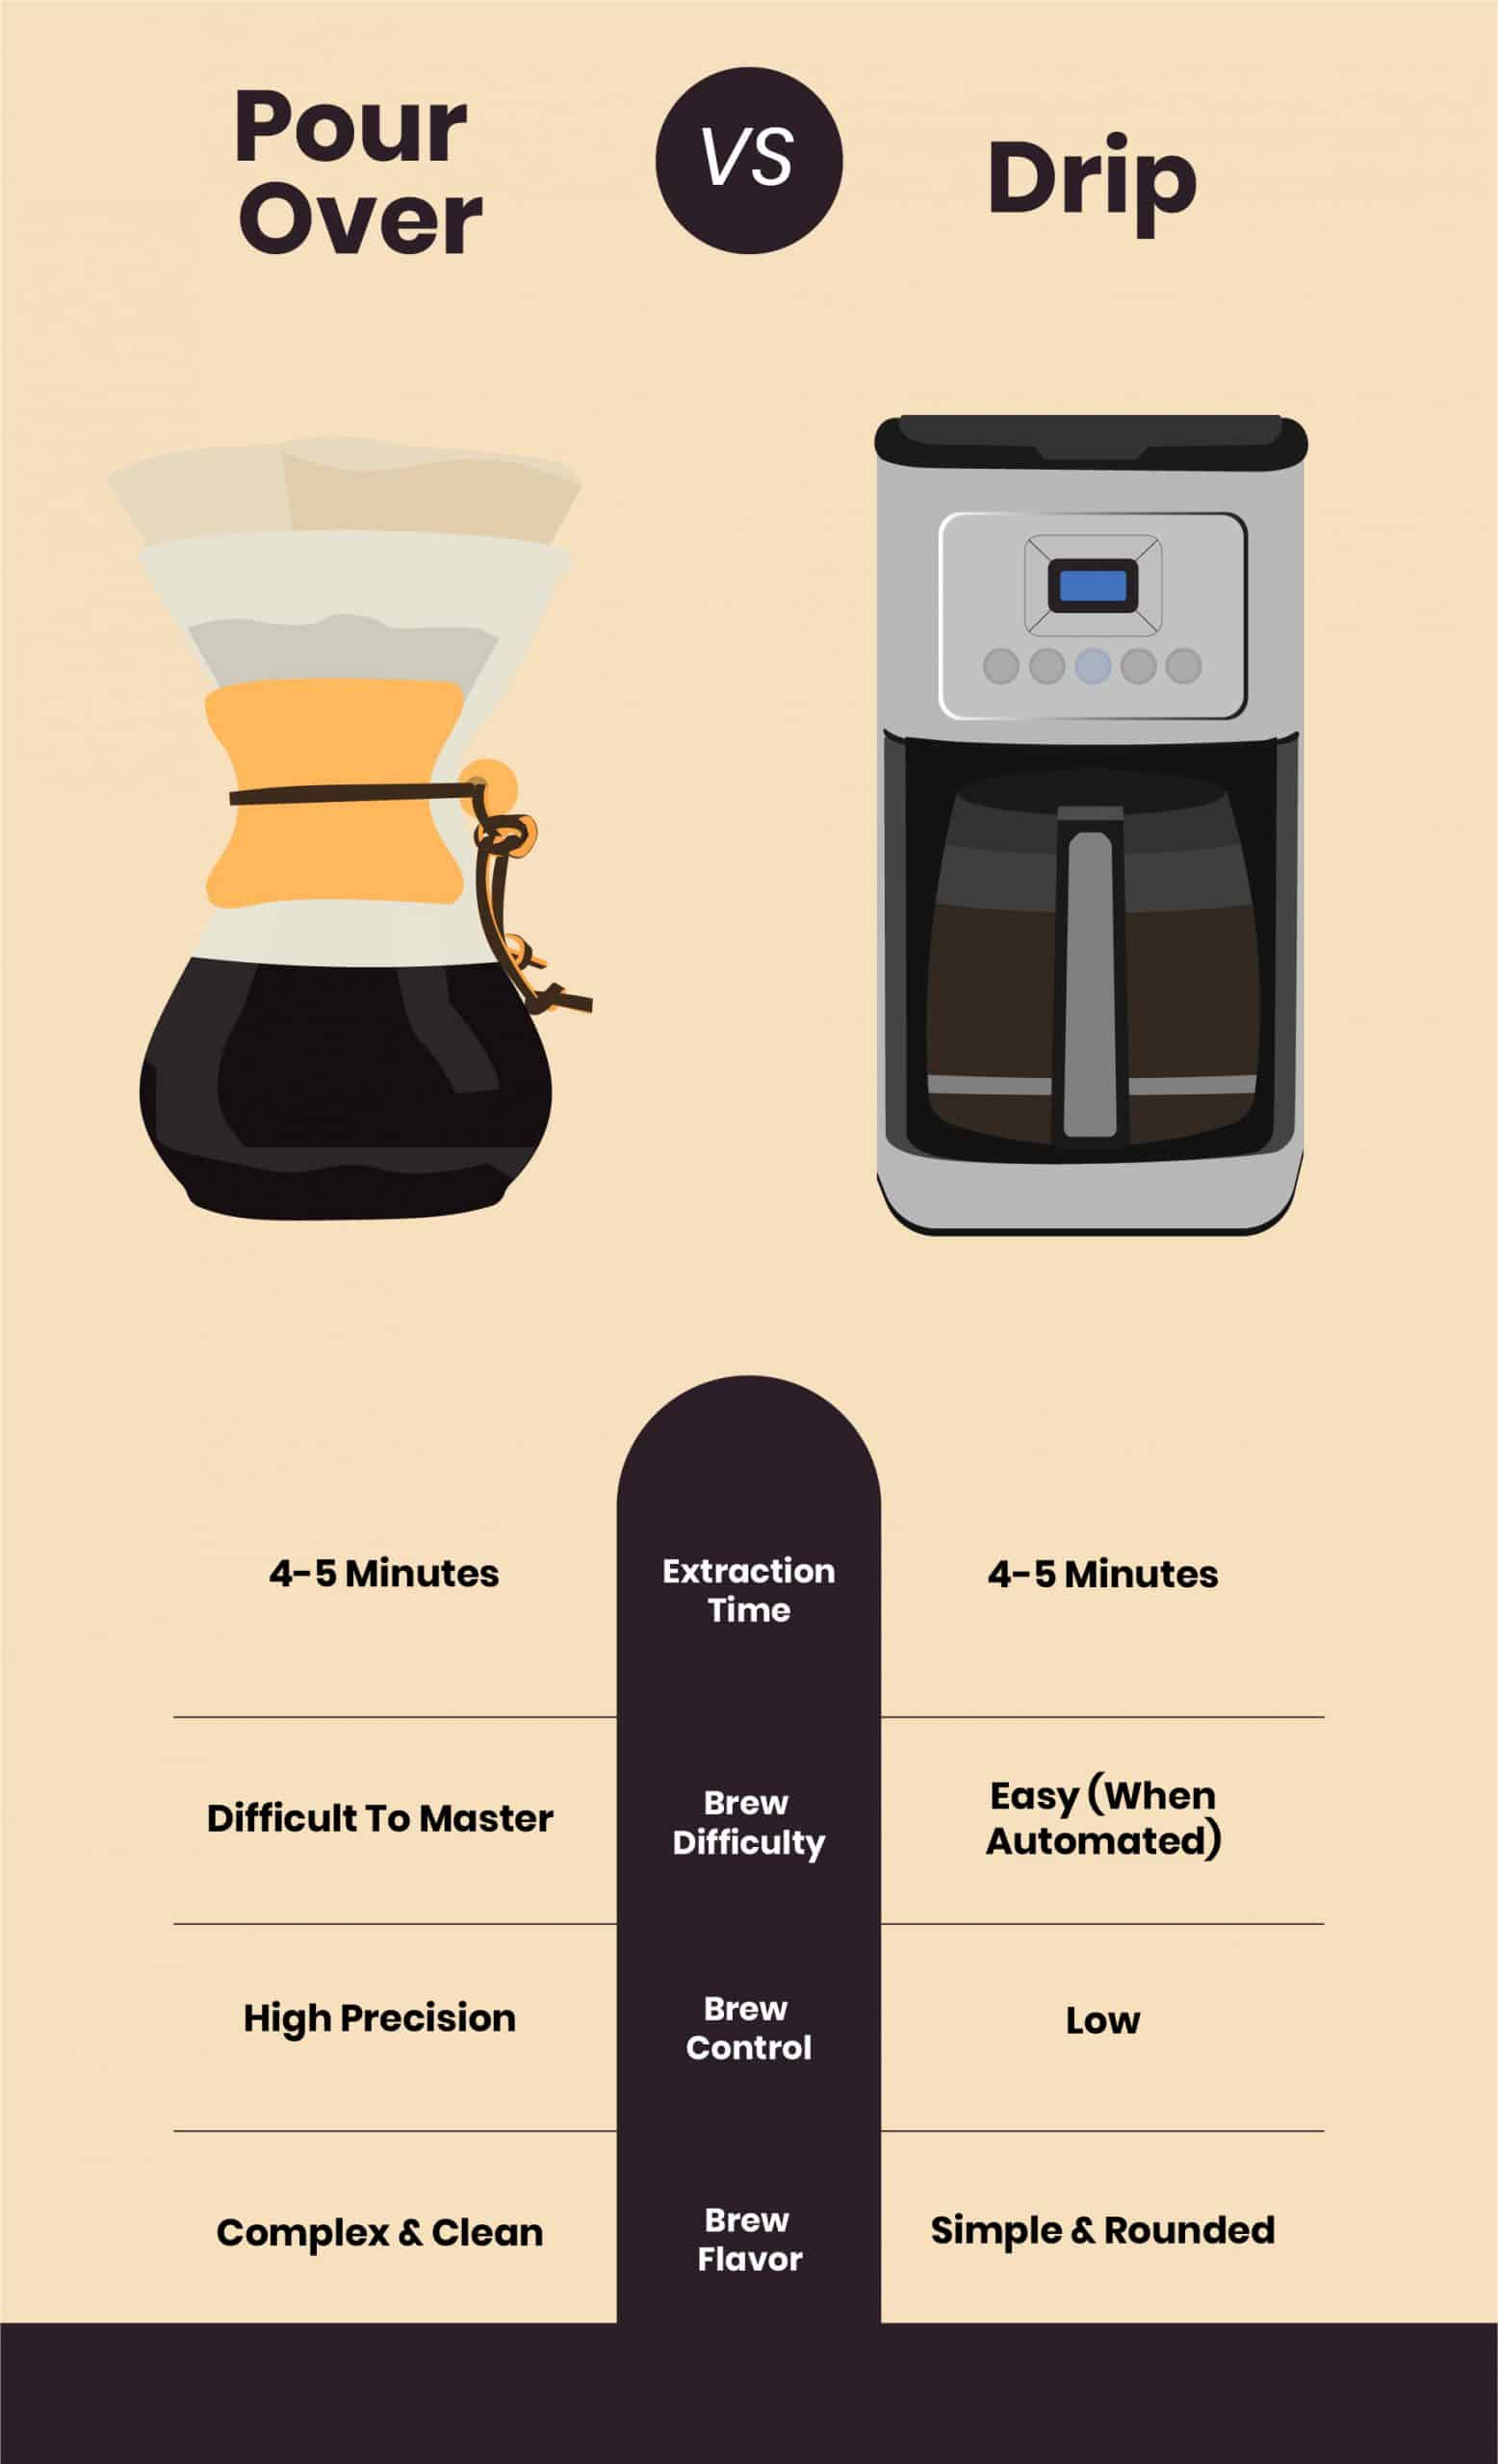 pour over compared to drip infographic